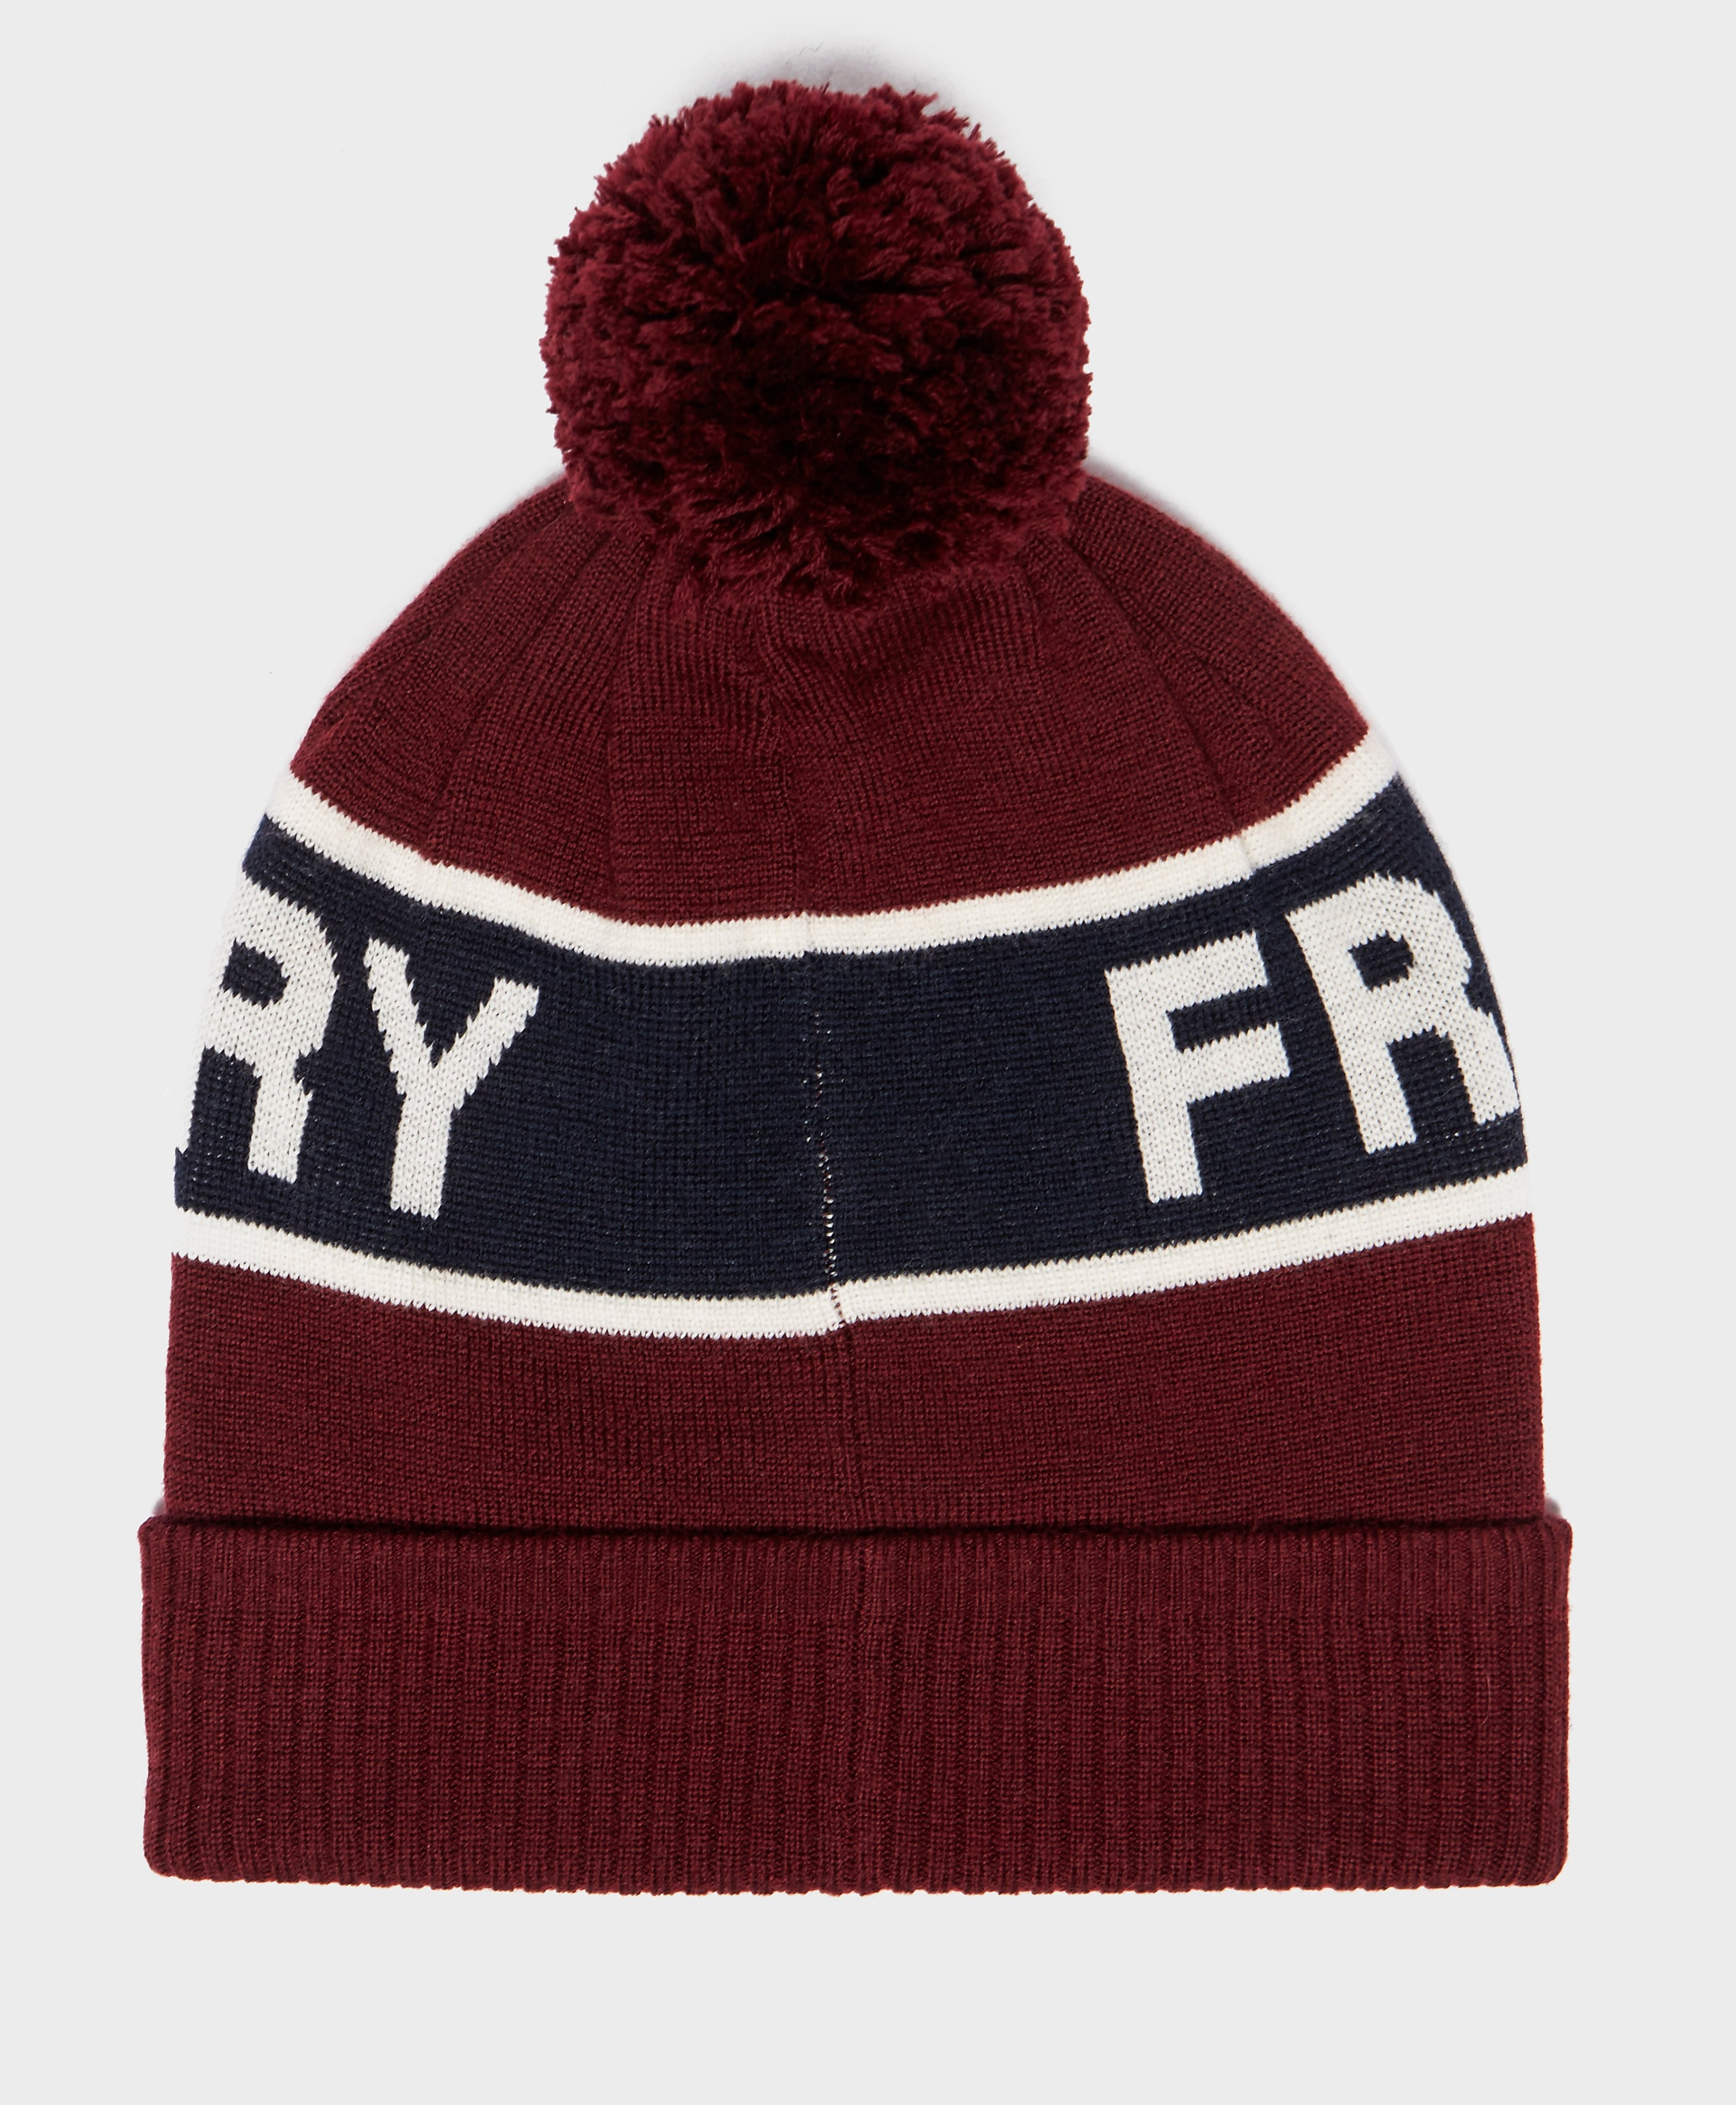 Fred Perry Bobble Beanie Hat